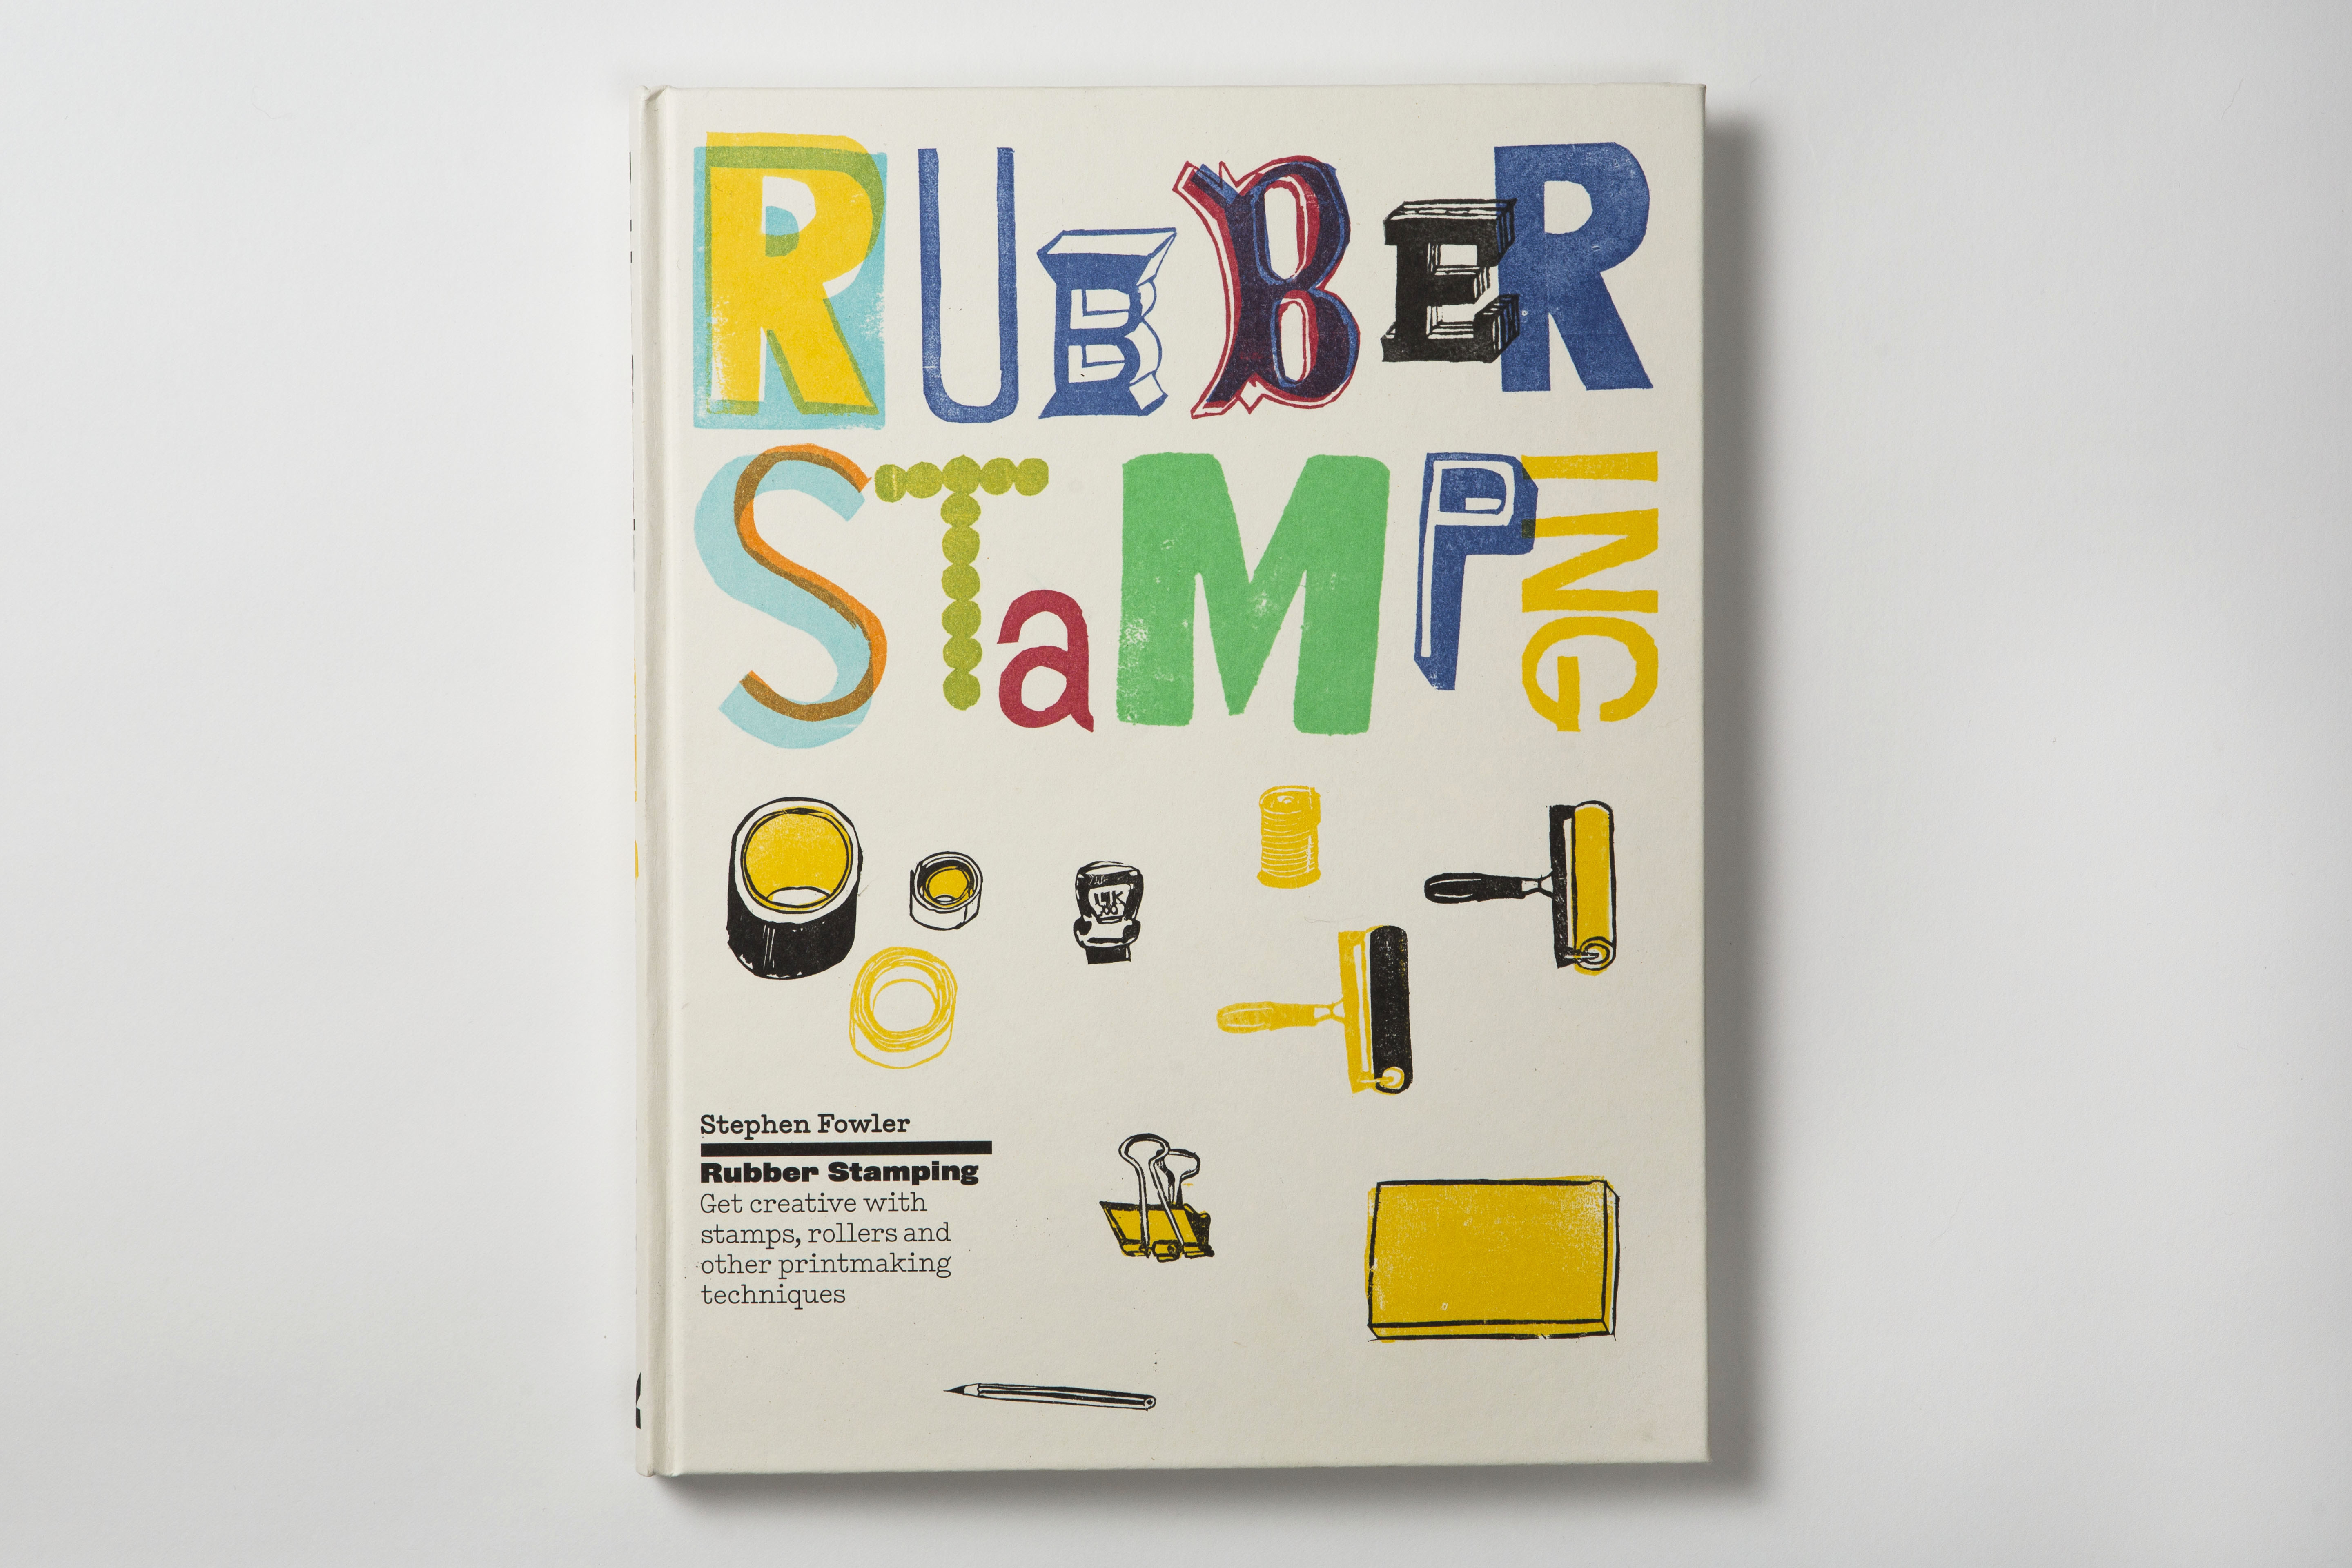 Stephen Fowler Rubber Stamping Book